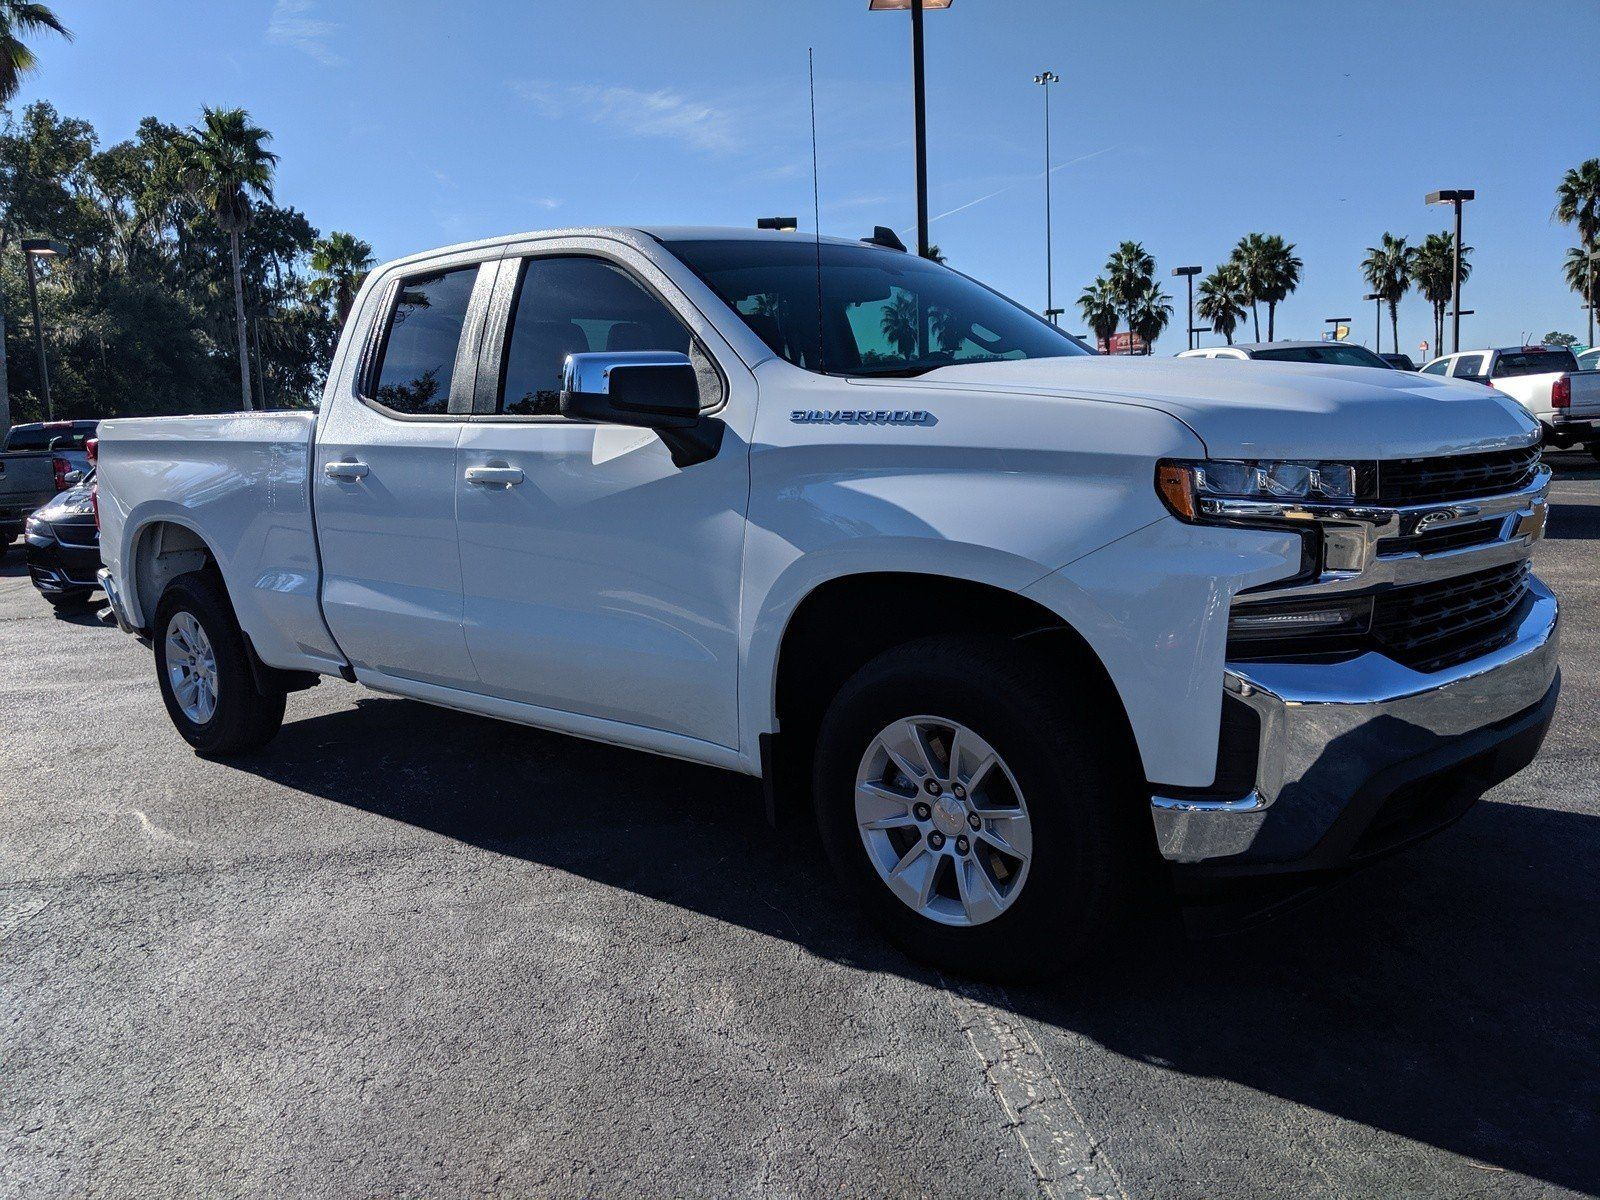 2020 Chevy Tahoe Ltz Review And Release Date In 2020 Chevrolet Silverado Chevy Tahoe Ltz Chevy Tahoe